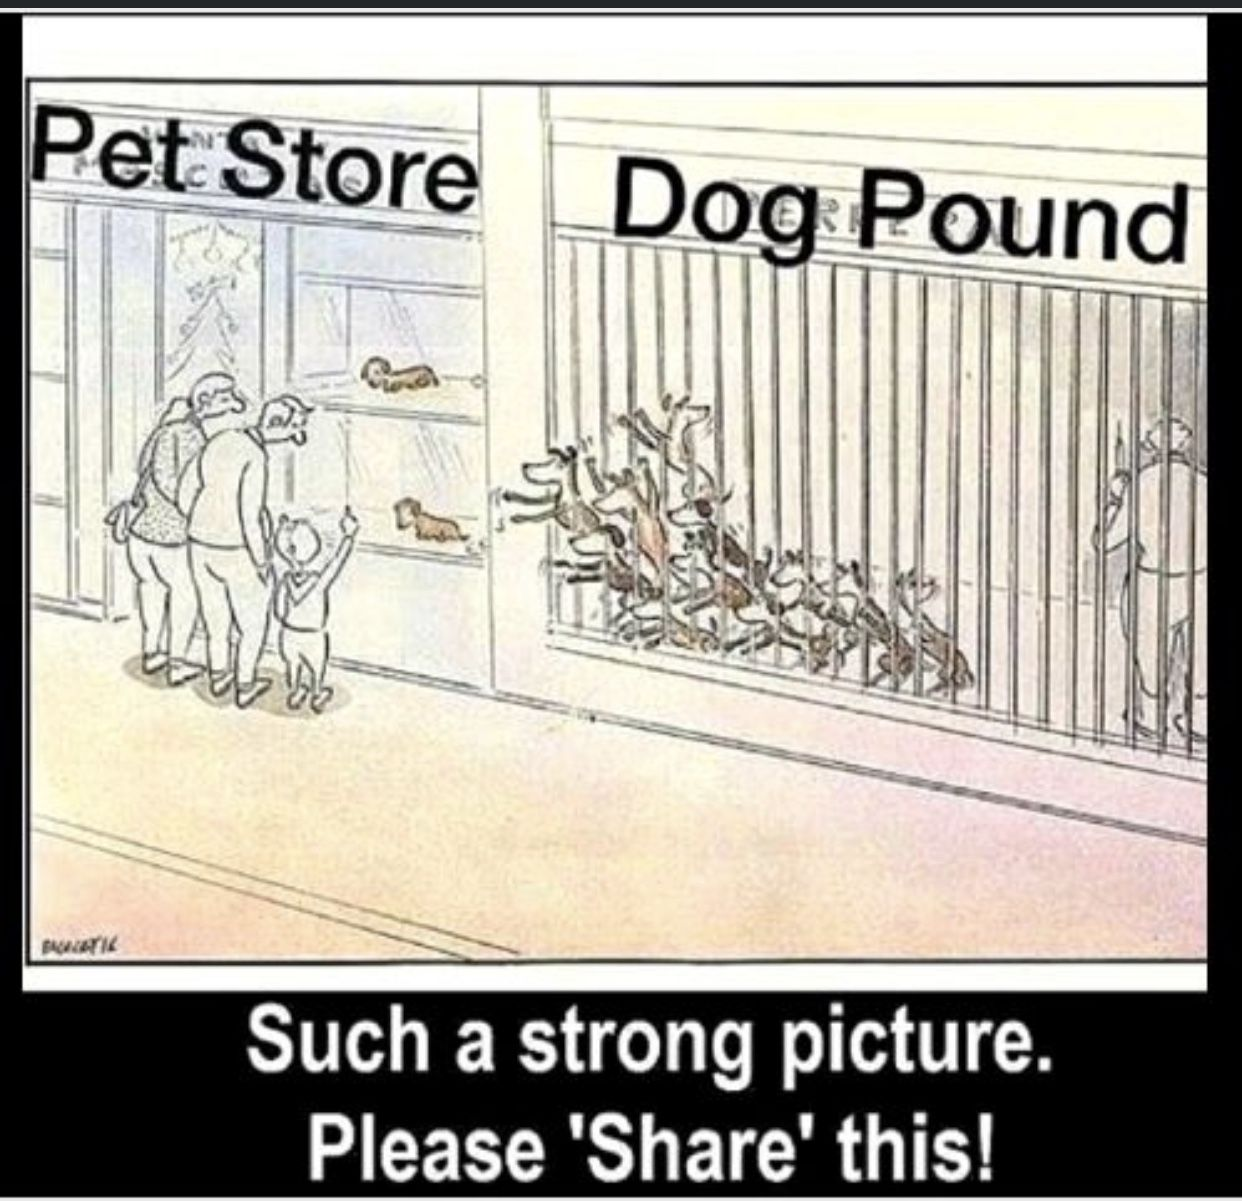 Pin by A Lana on Animals in 2020 (With images) Dog